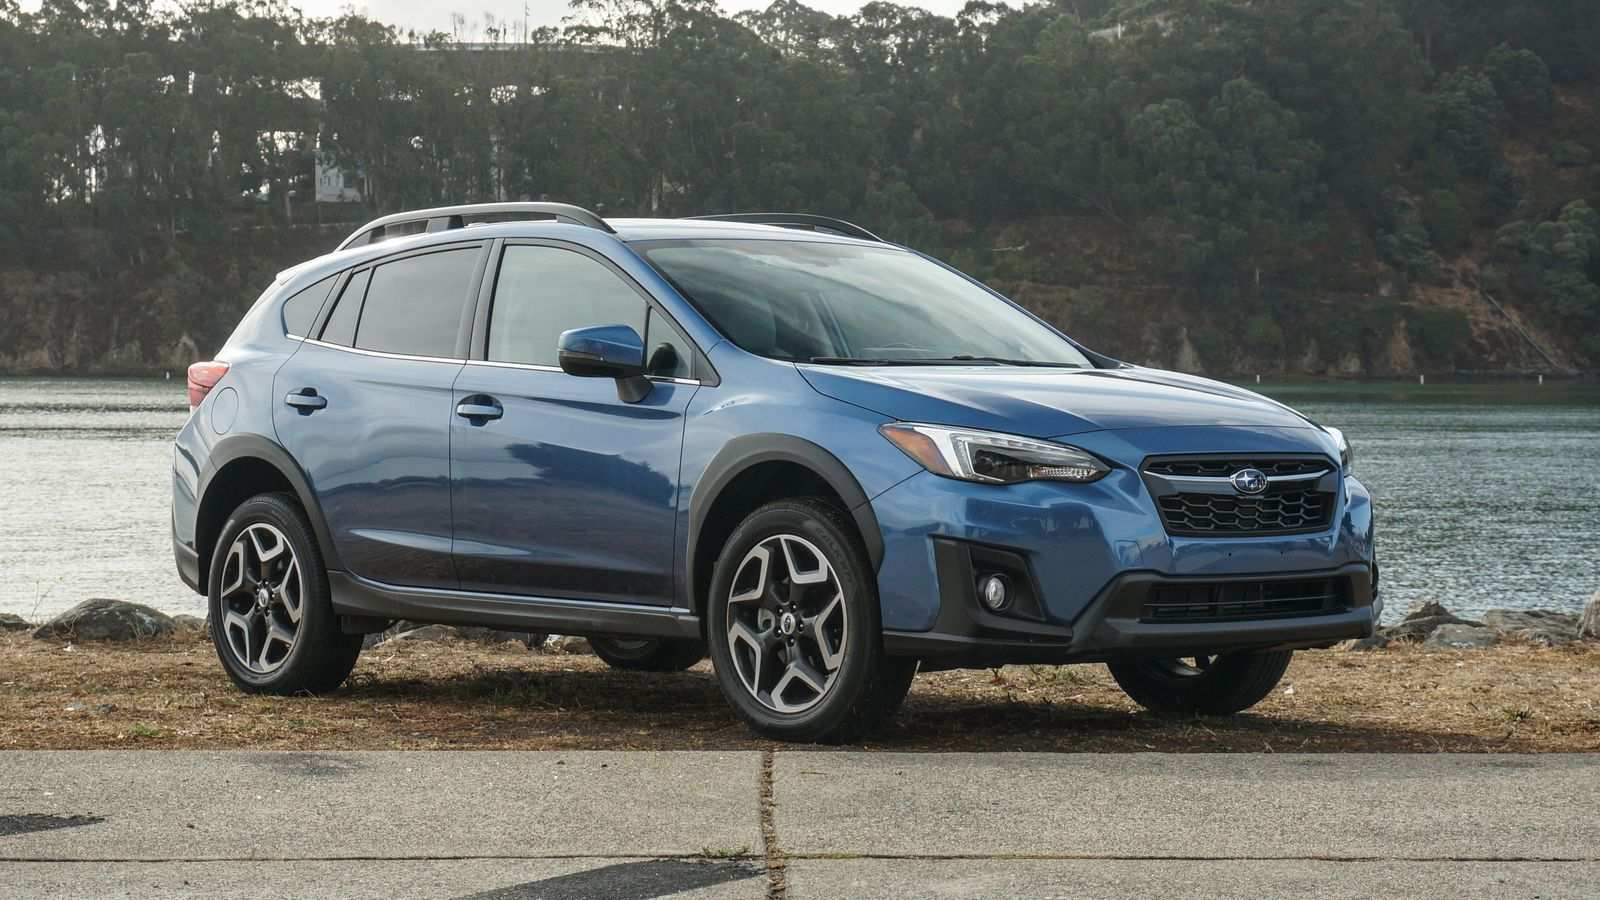 61 The Best 2019 Subaru Crosstrek Colors Photos